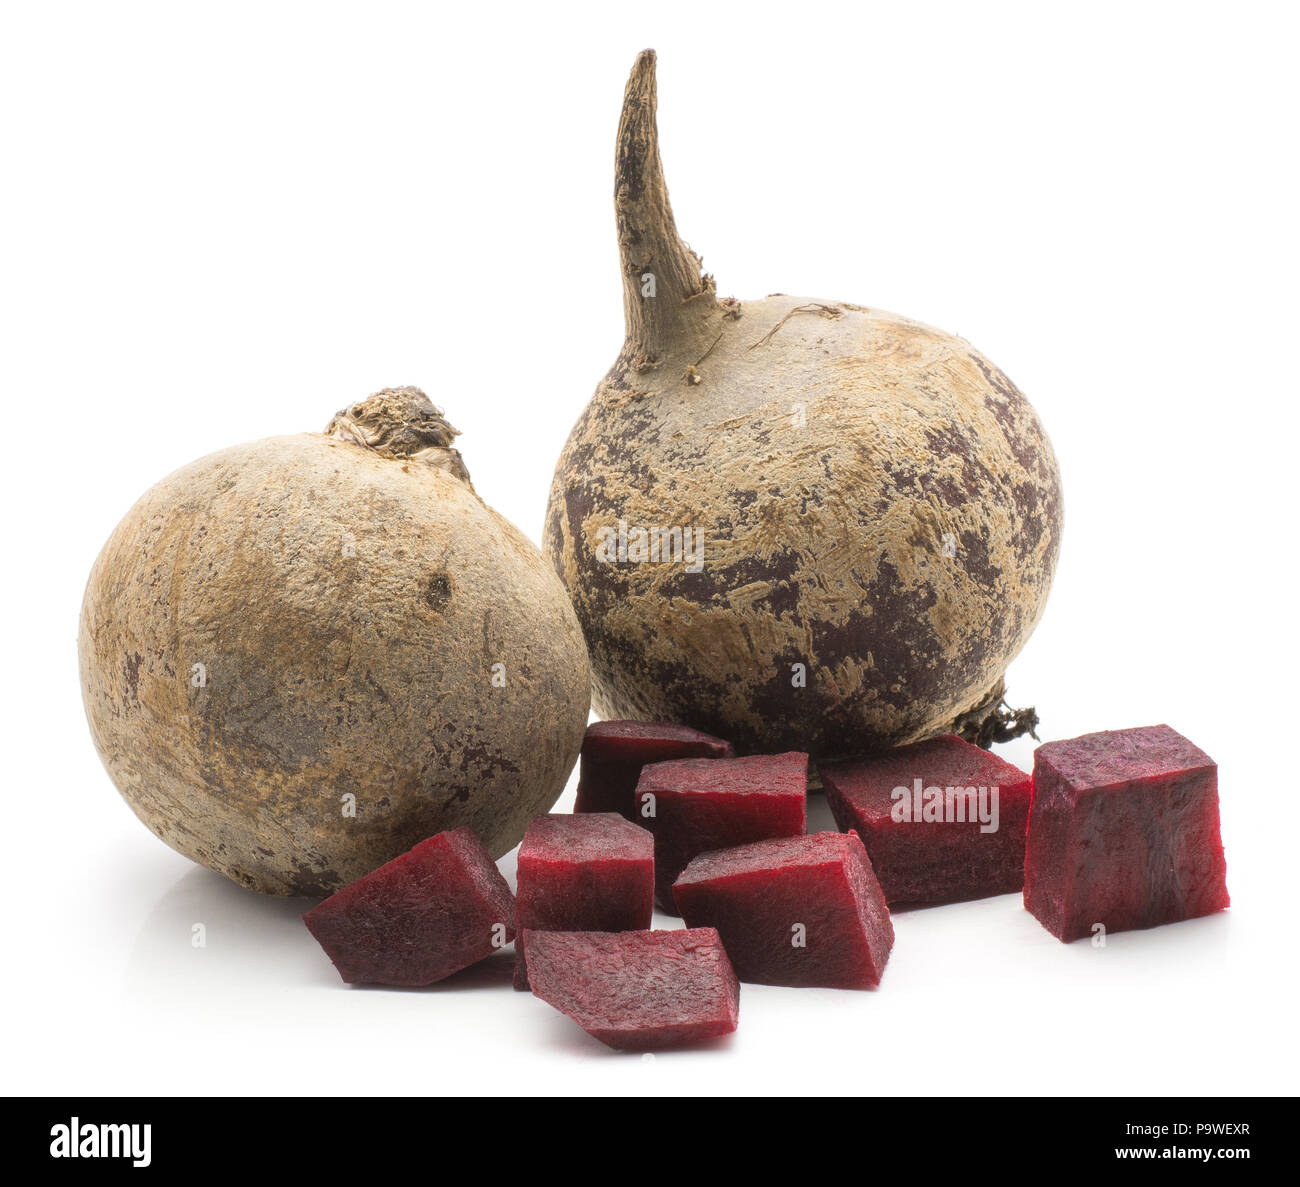 Two beetroot (raw red beet) bulbs and chopped pieces isolated on white background - Stock Image